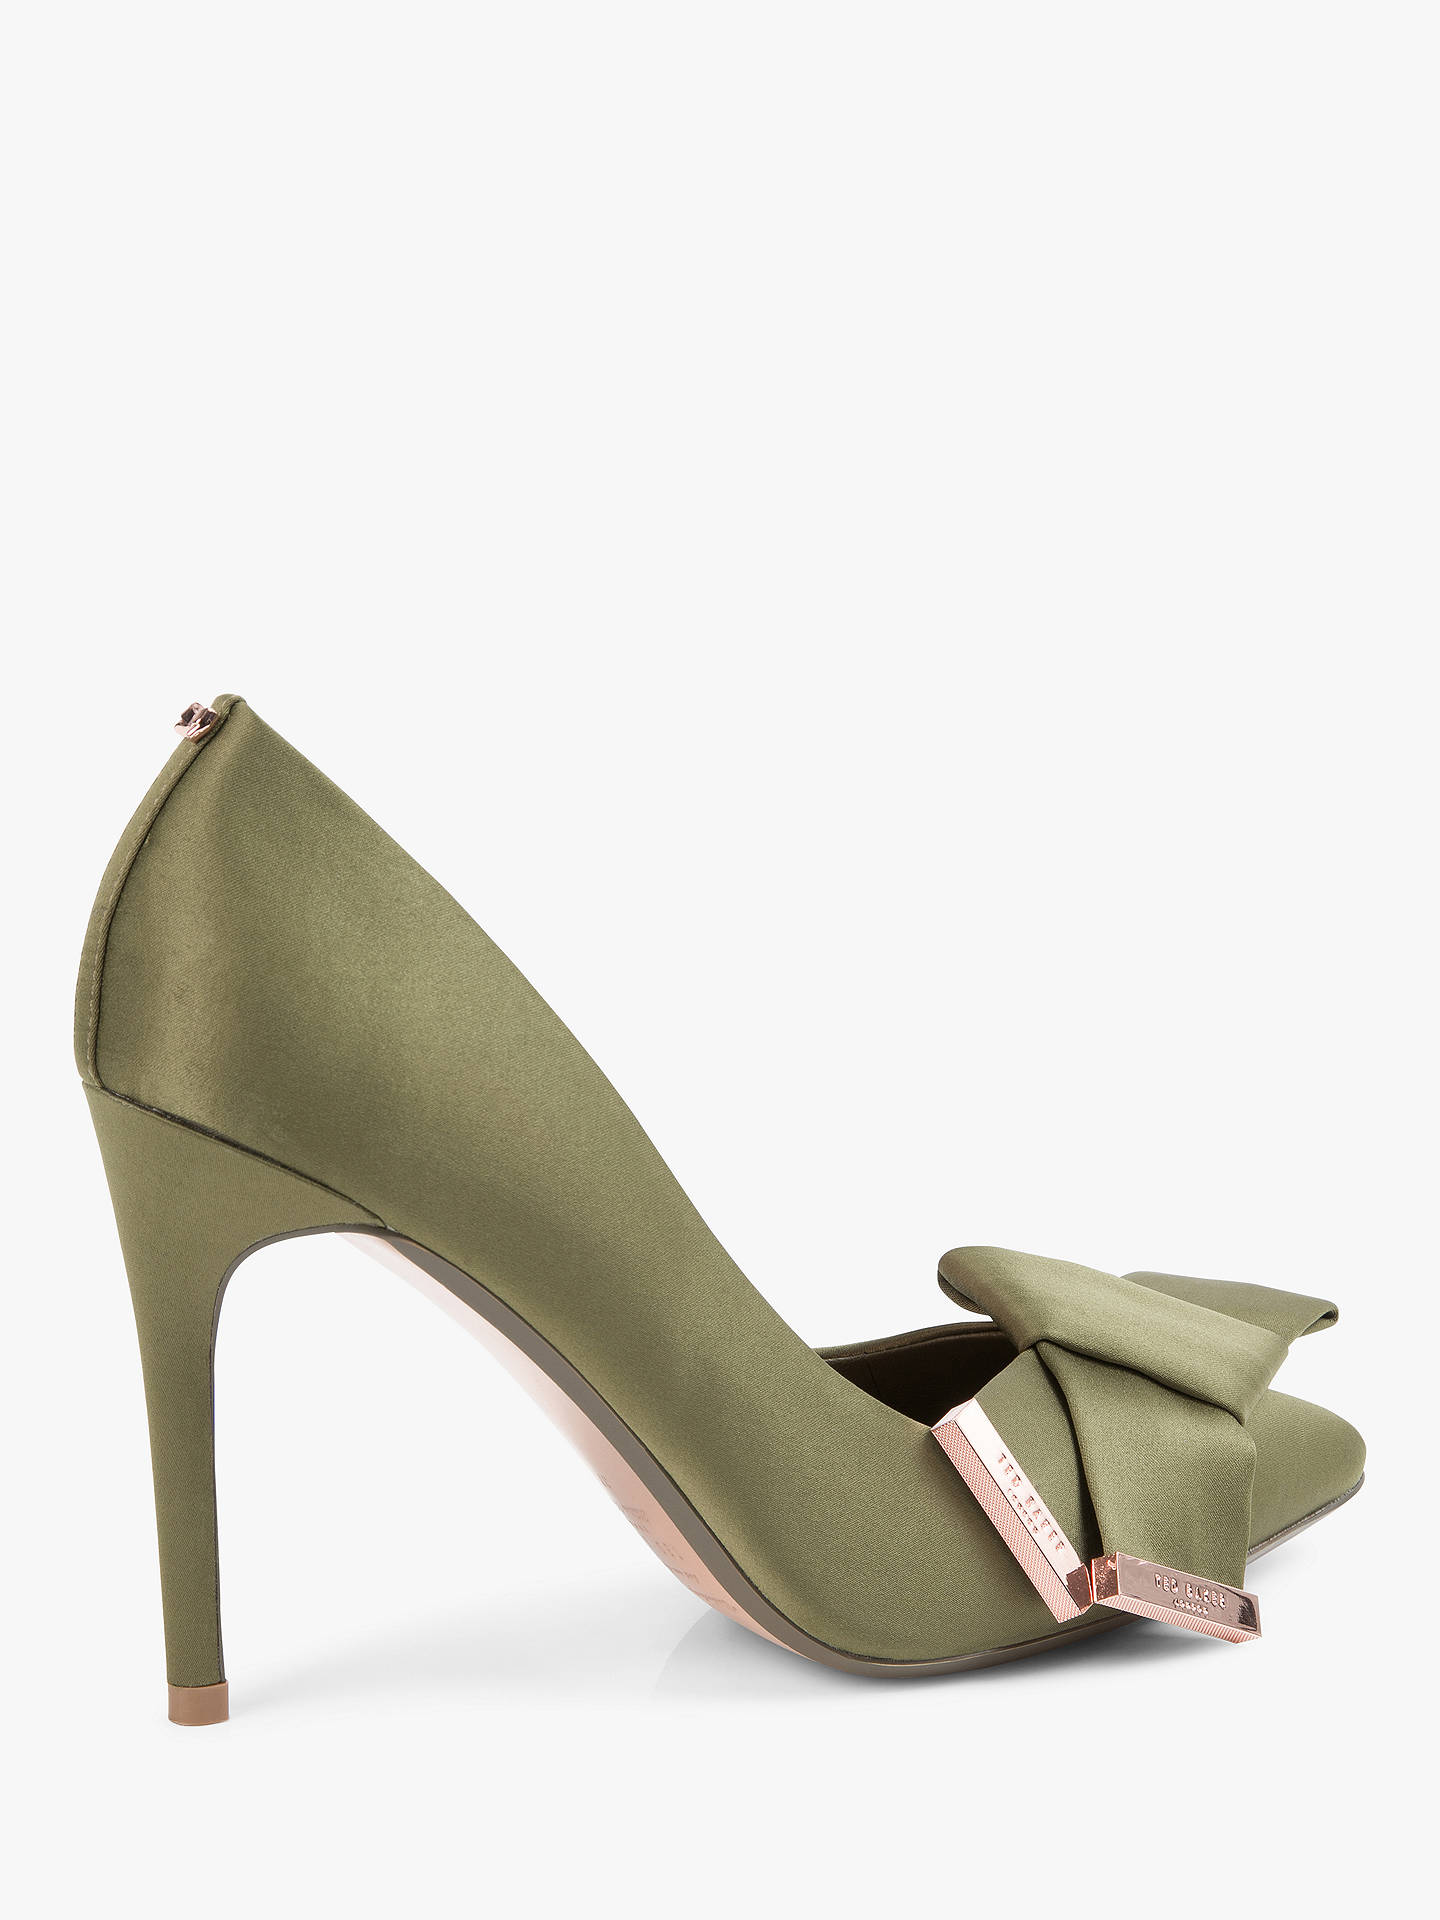 1a8d25ac86d Ted Baker Ines Stiletto Heel Bow Detail Court Shoes at John Lewis ...